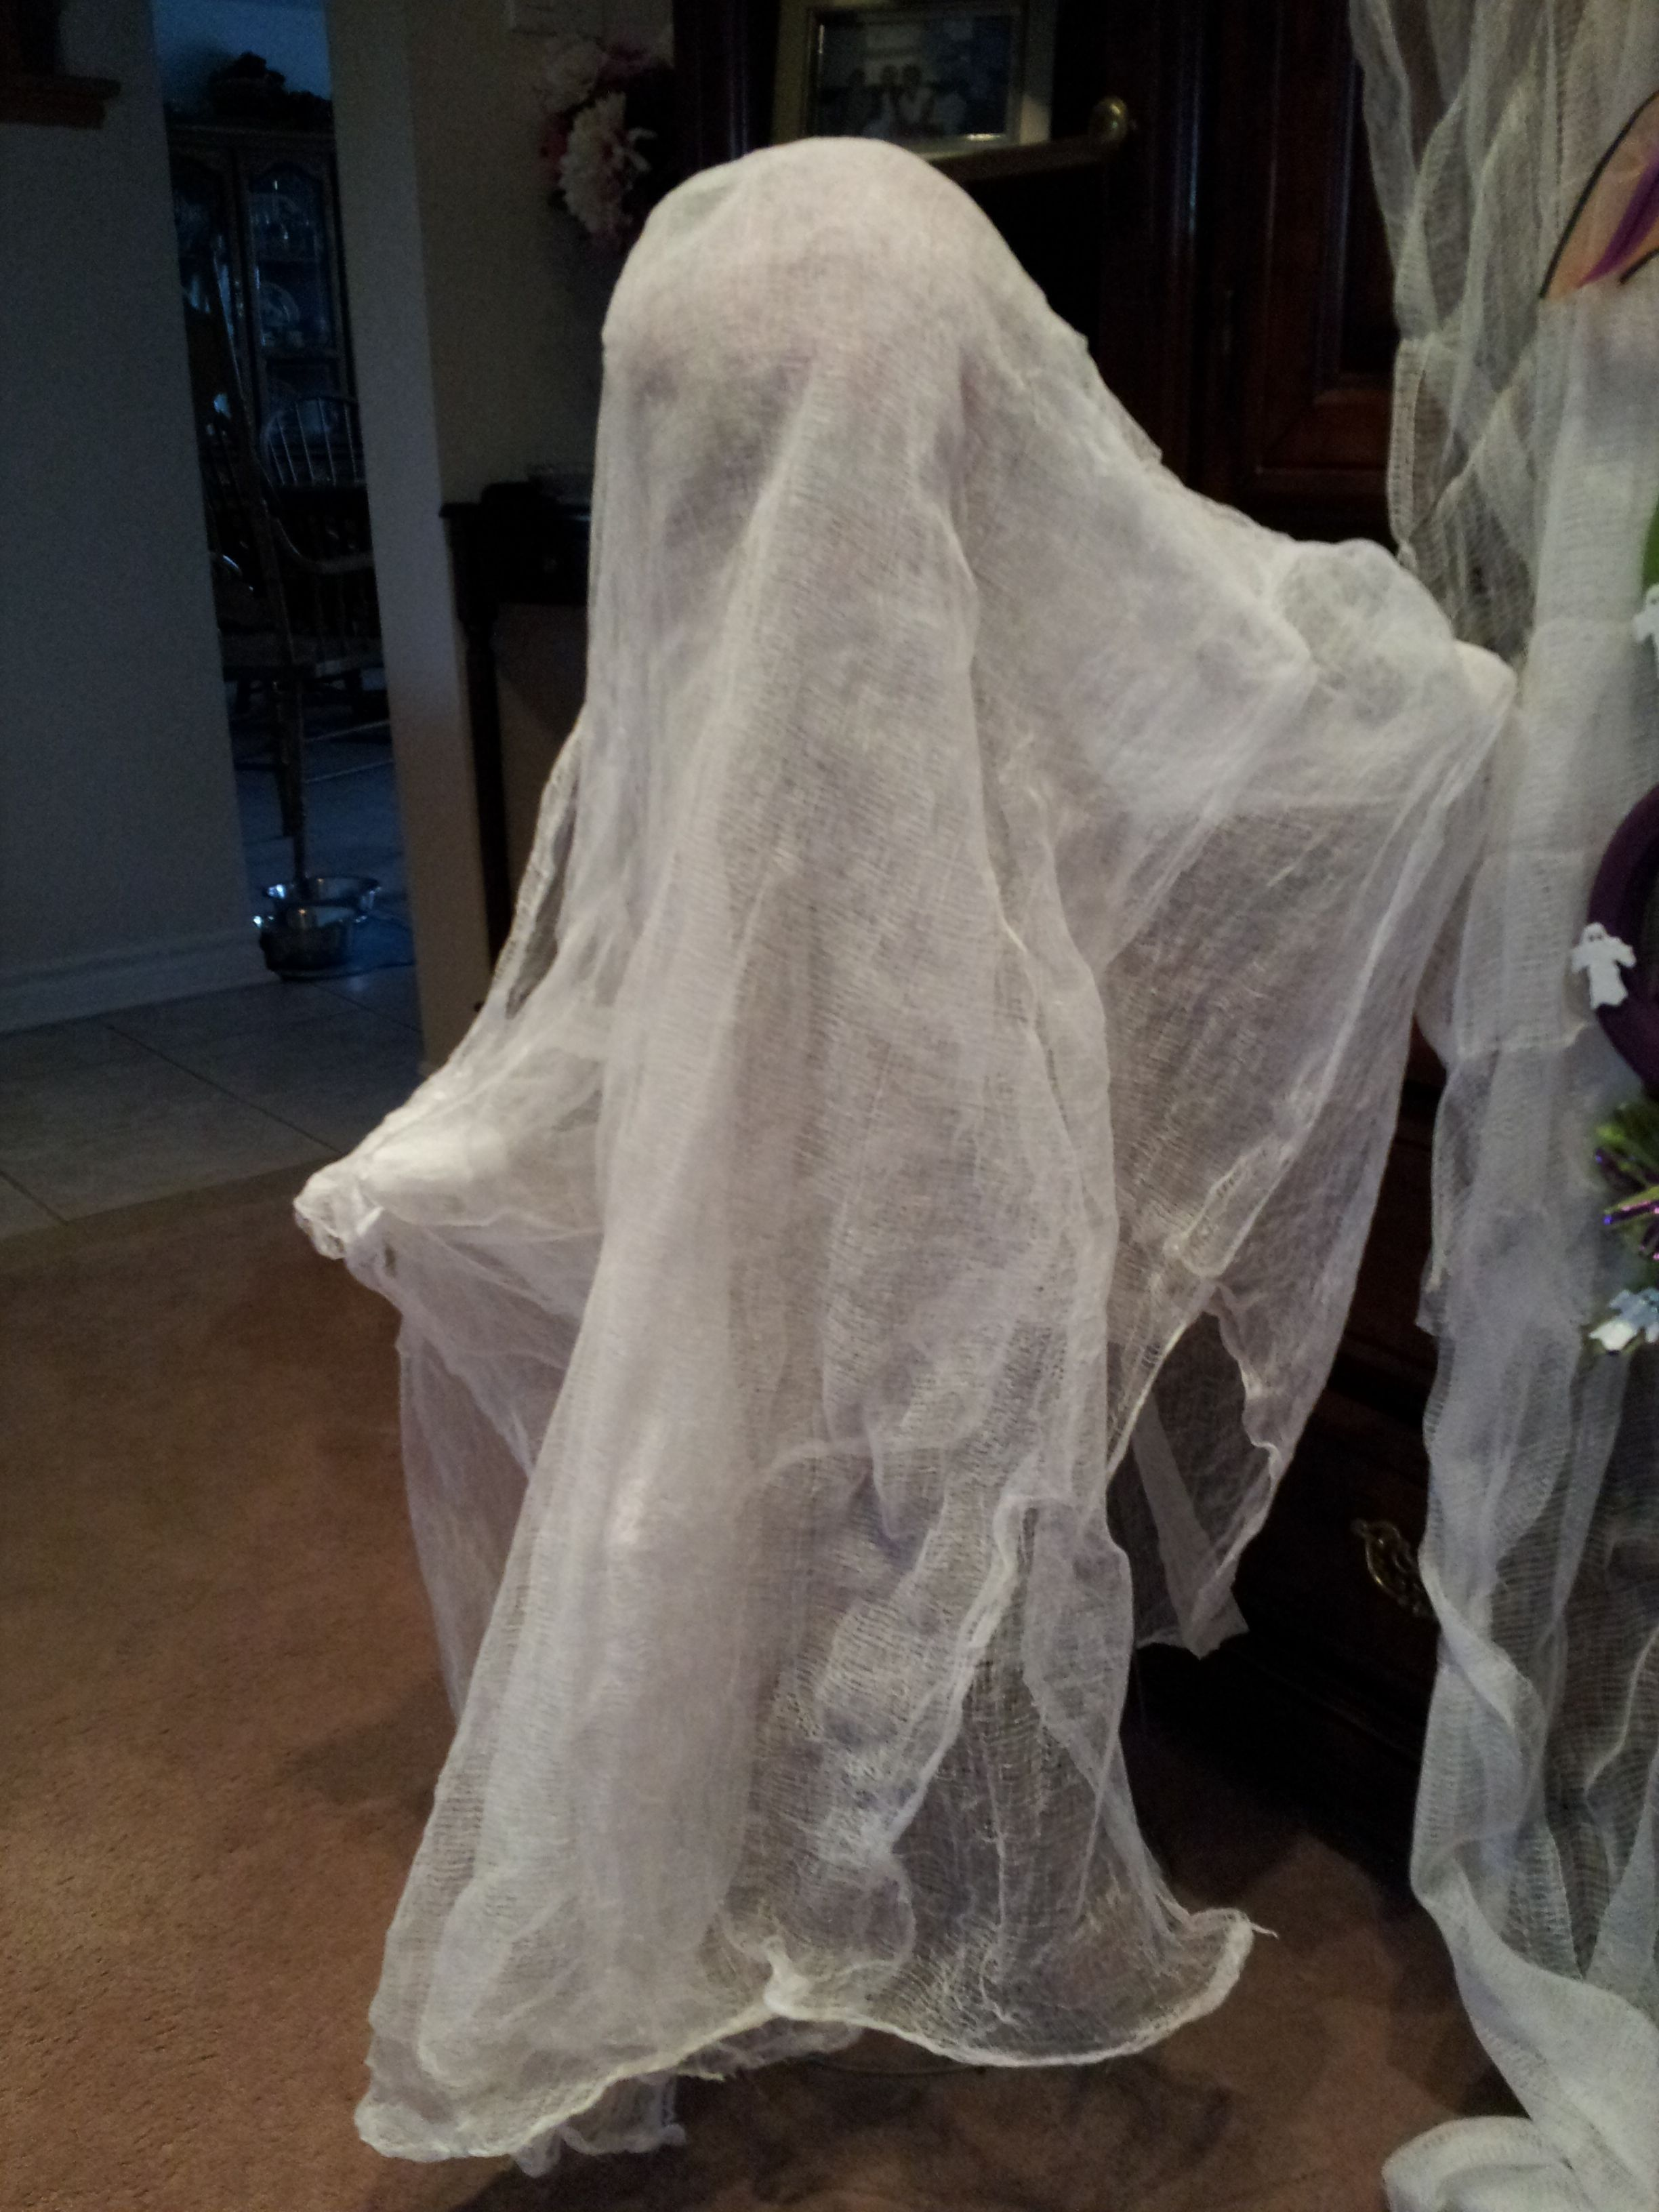 The first starch ghost....we think it is spookier with no